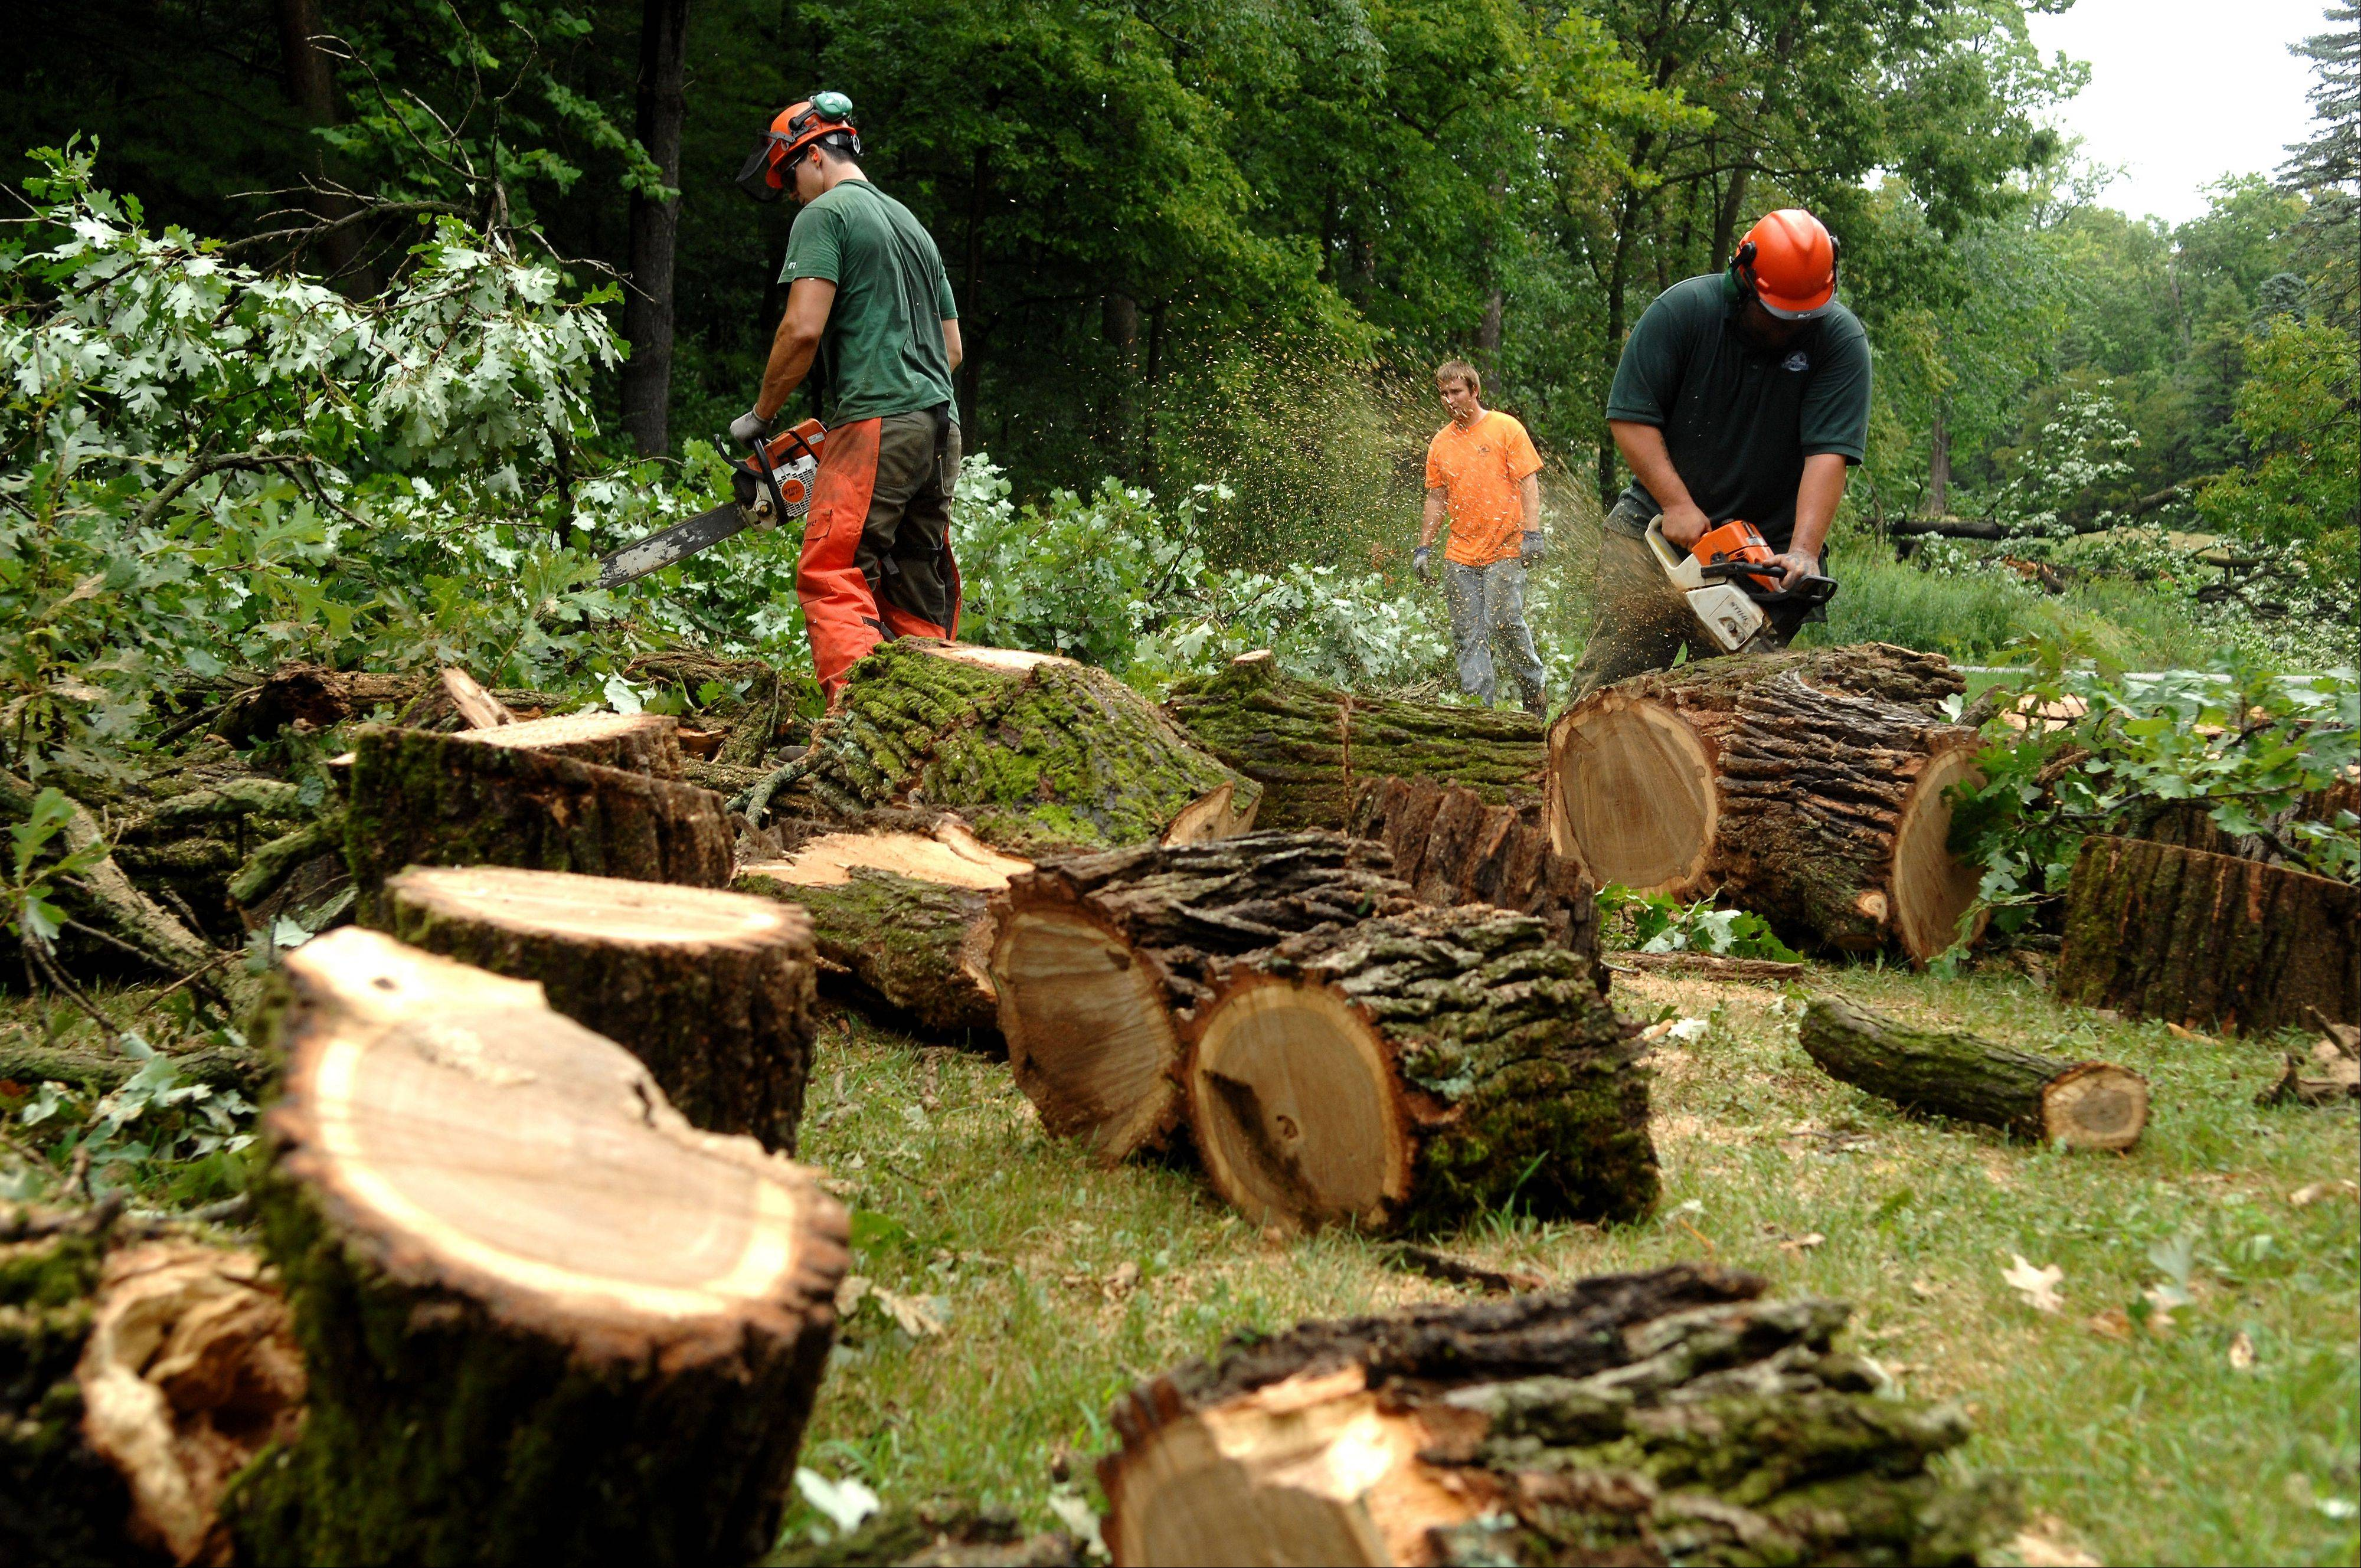 Kane County Forest Preserve District employees Paul Sanchez, left, Matthew Ikemire and Kyle Sparks work on cleaning up several downed trees at Fabyan Forest Preserve in Geneva after strong storms swept through the area early Tuesday morning.